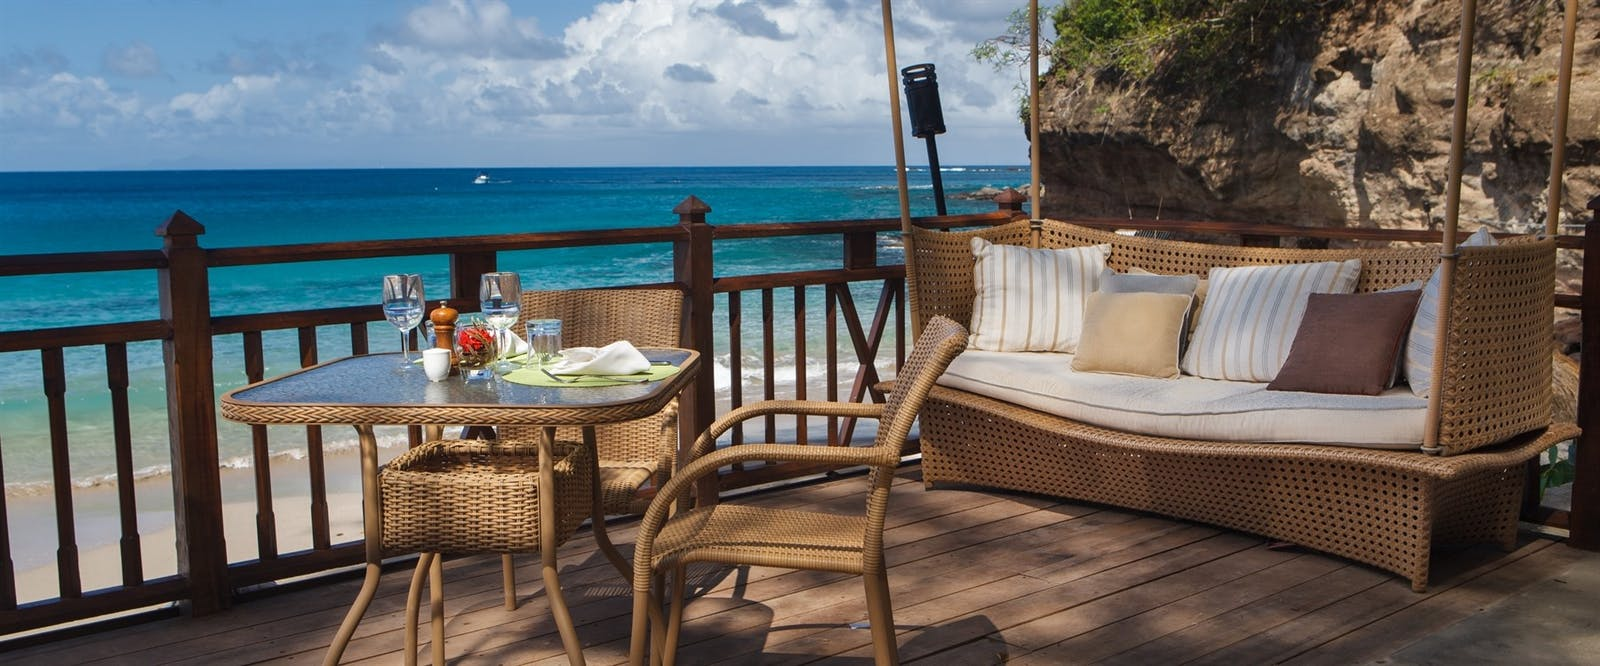 Naked Fisherman deck, Cap Maison, St Lucia